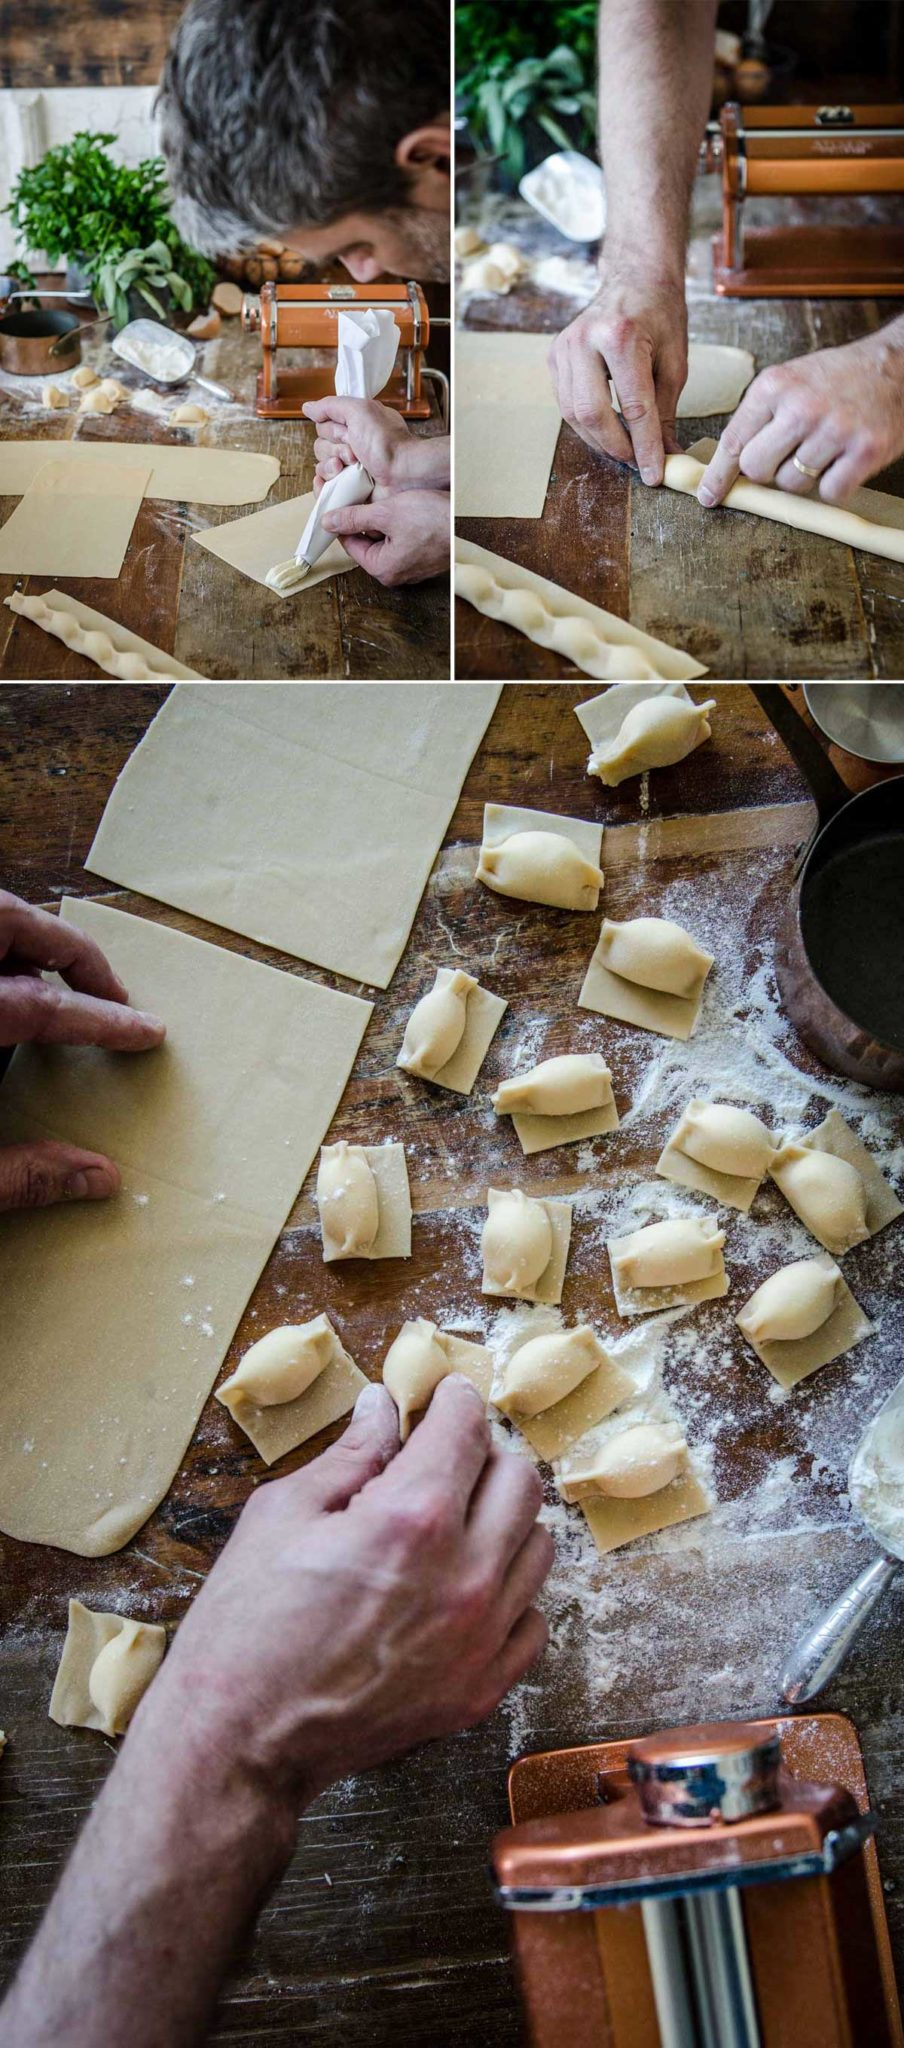 Casoncelli - How to make Filled Pasta | Chew Town Food Blog